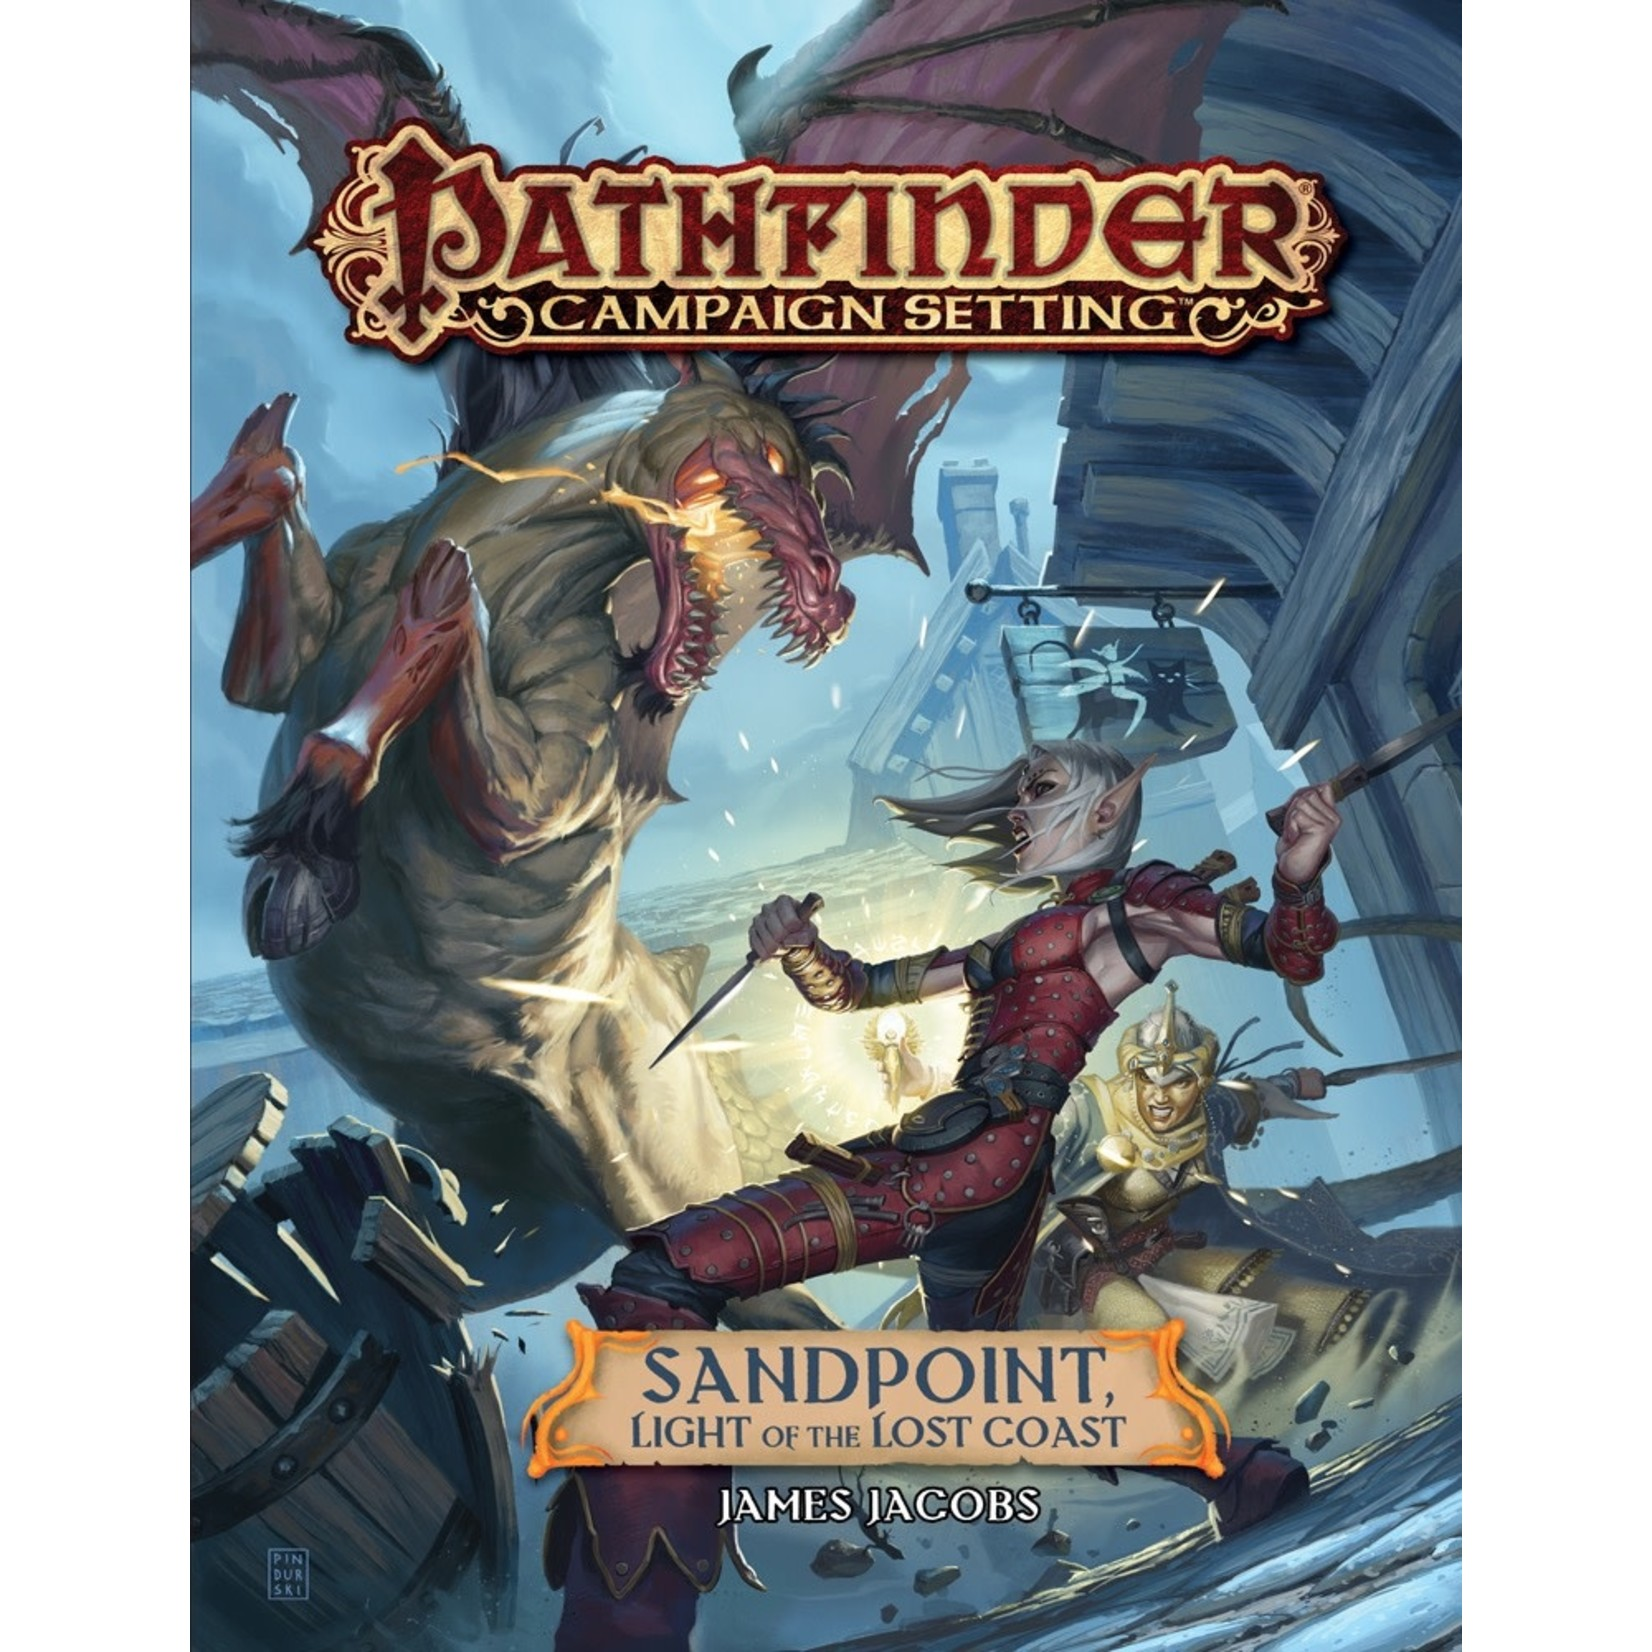 Pathfinder RPG Campaign Setting: Sandpoint